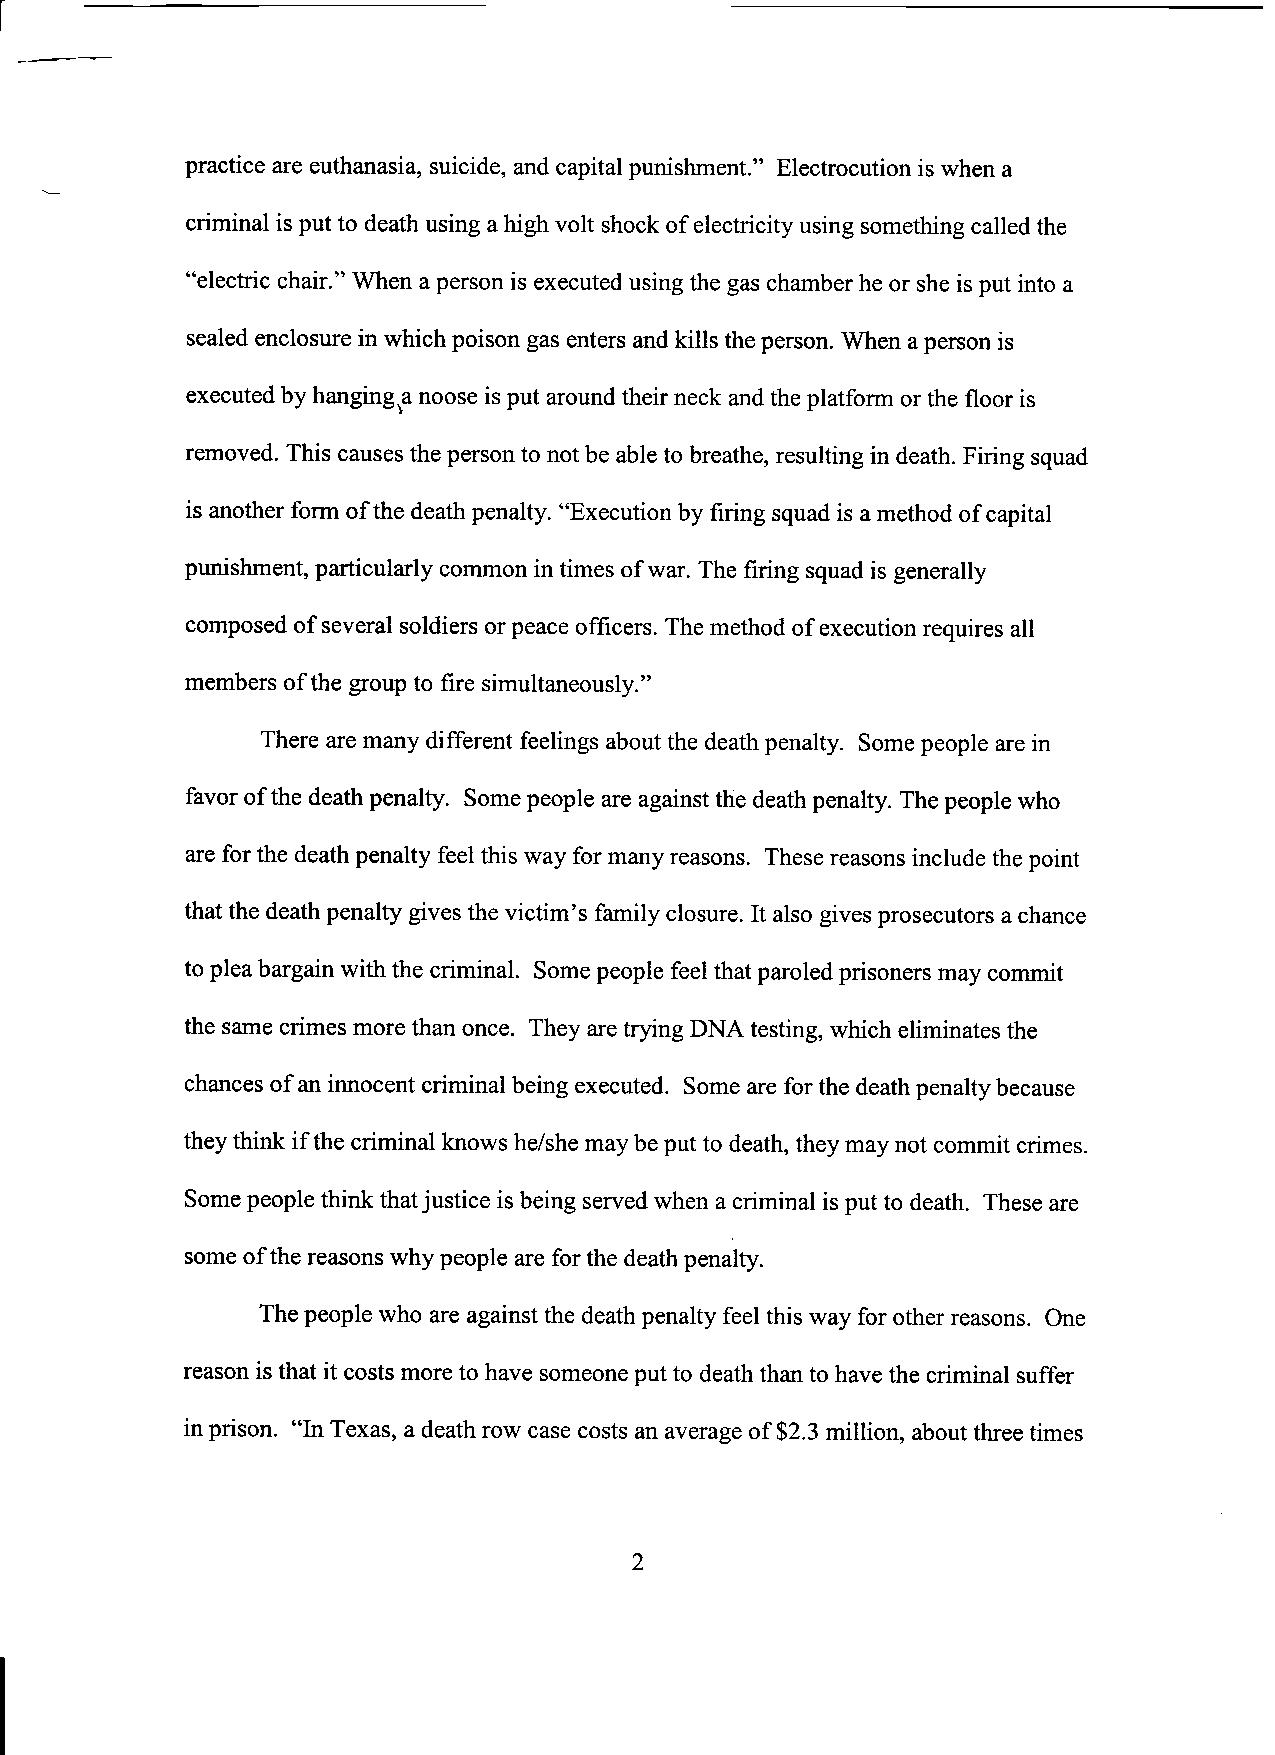 002 Death Penalty Essays Pg Essay Sensational Pro Titles Outline Topics Full